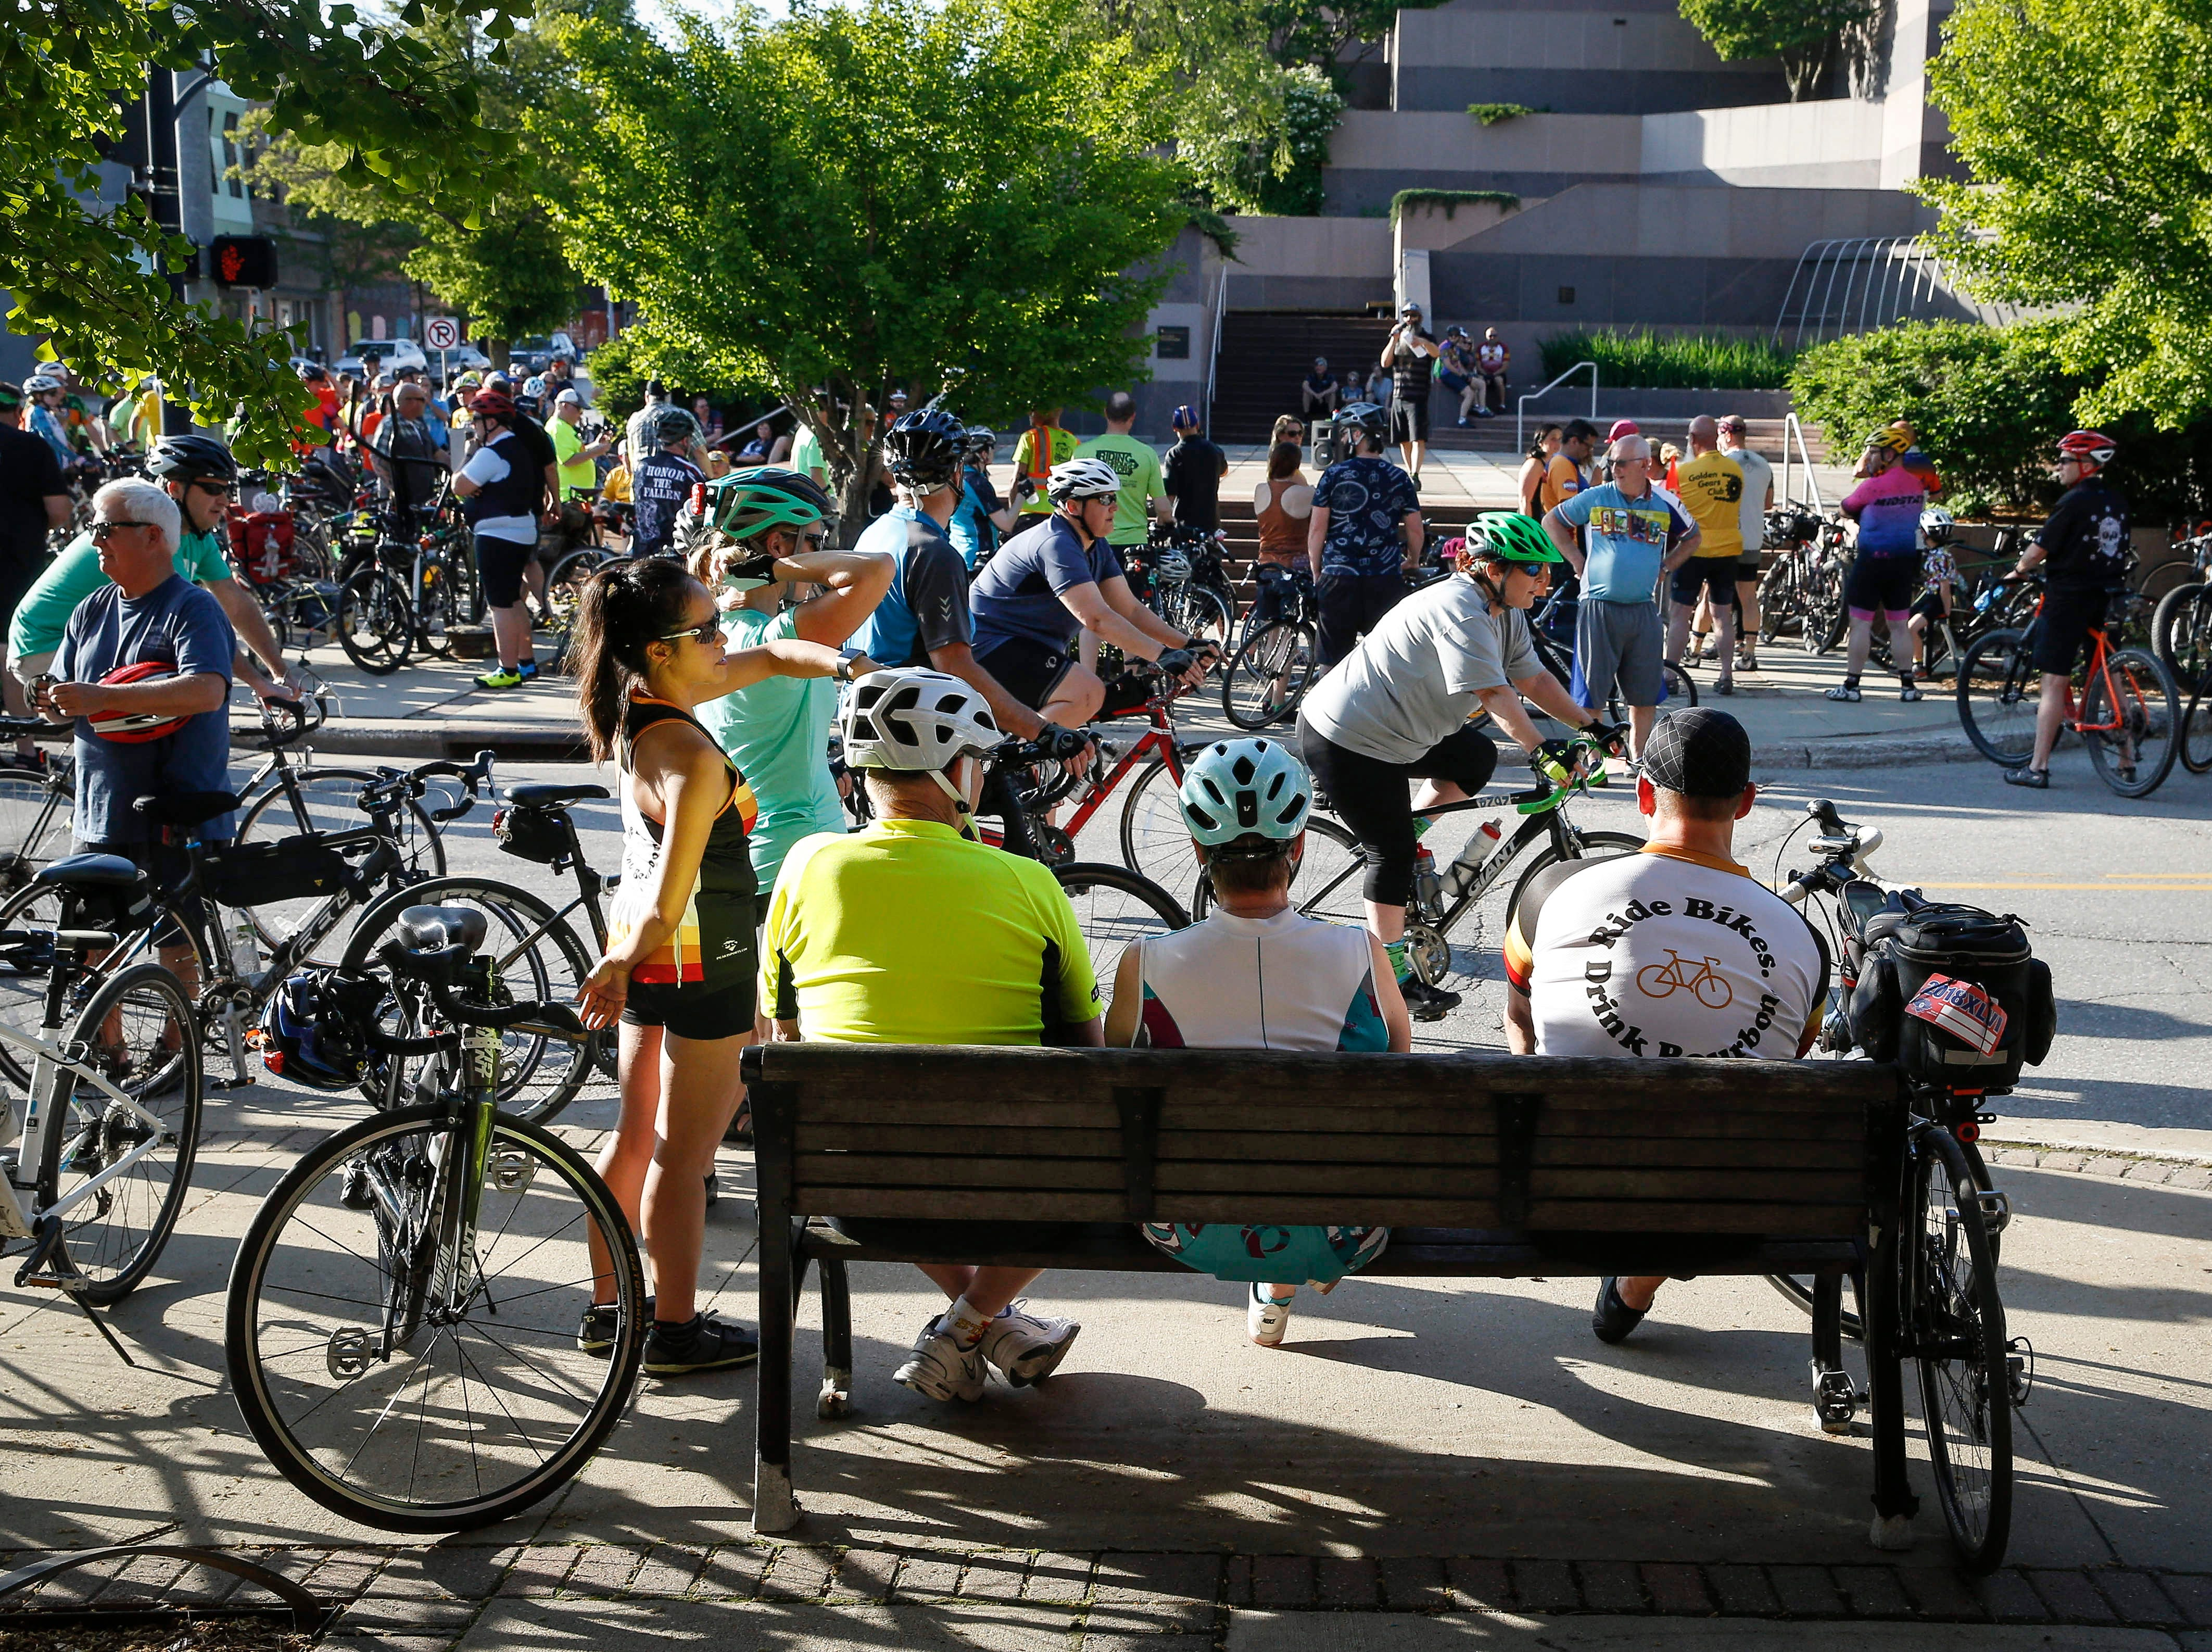 Hundreds of cyclists gathered in downtown Des Moines on Wednesday, May 15, 2019, to pay tribute to the cyclists killed or injured. The 15th annual Ride of Silence proceeded from the East Village to downtown and ended at the State Capitol Grounds.